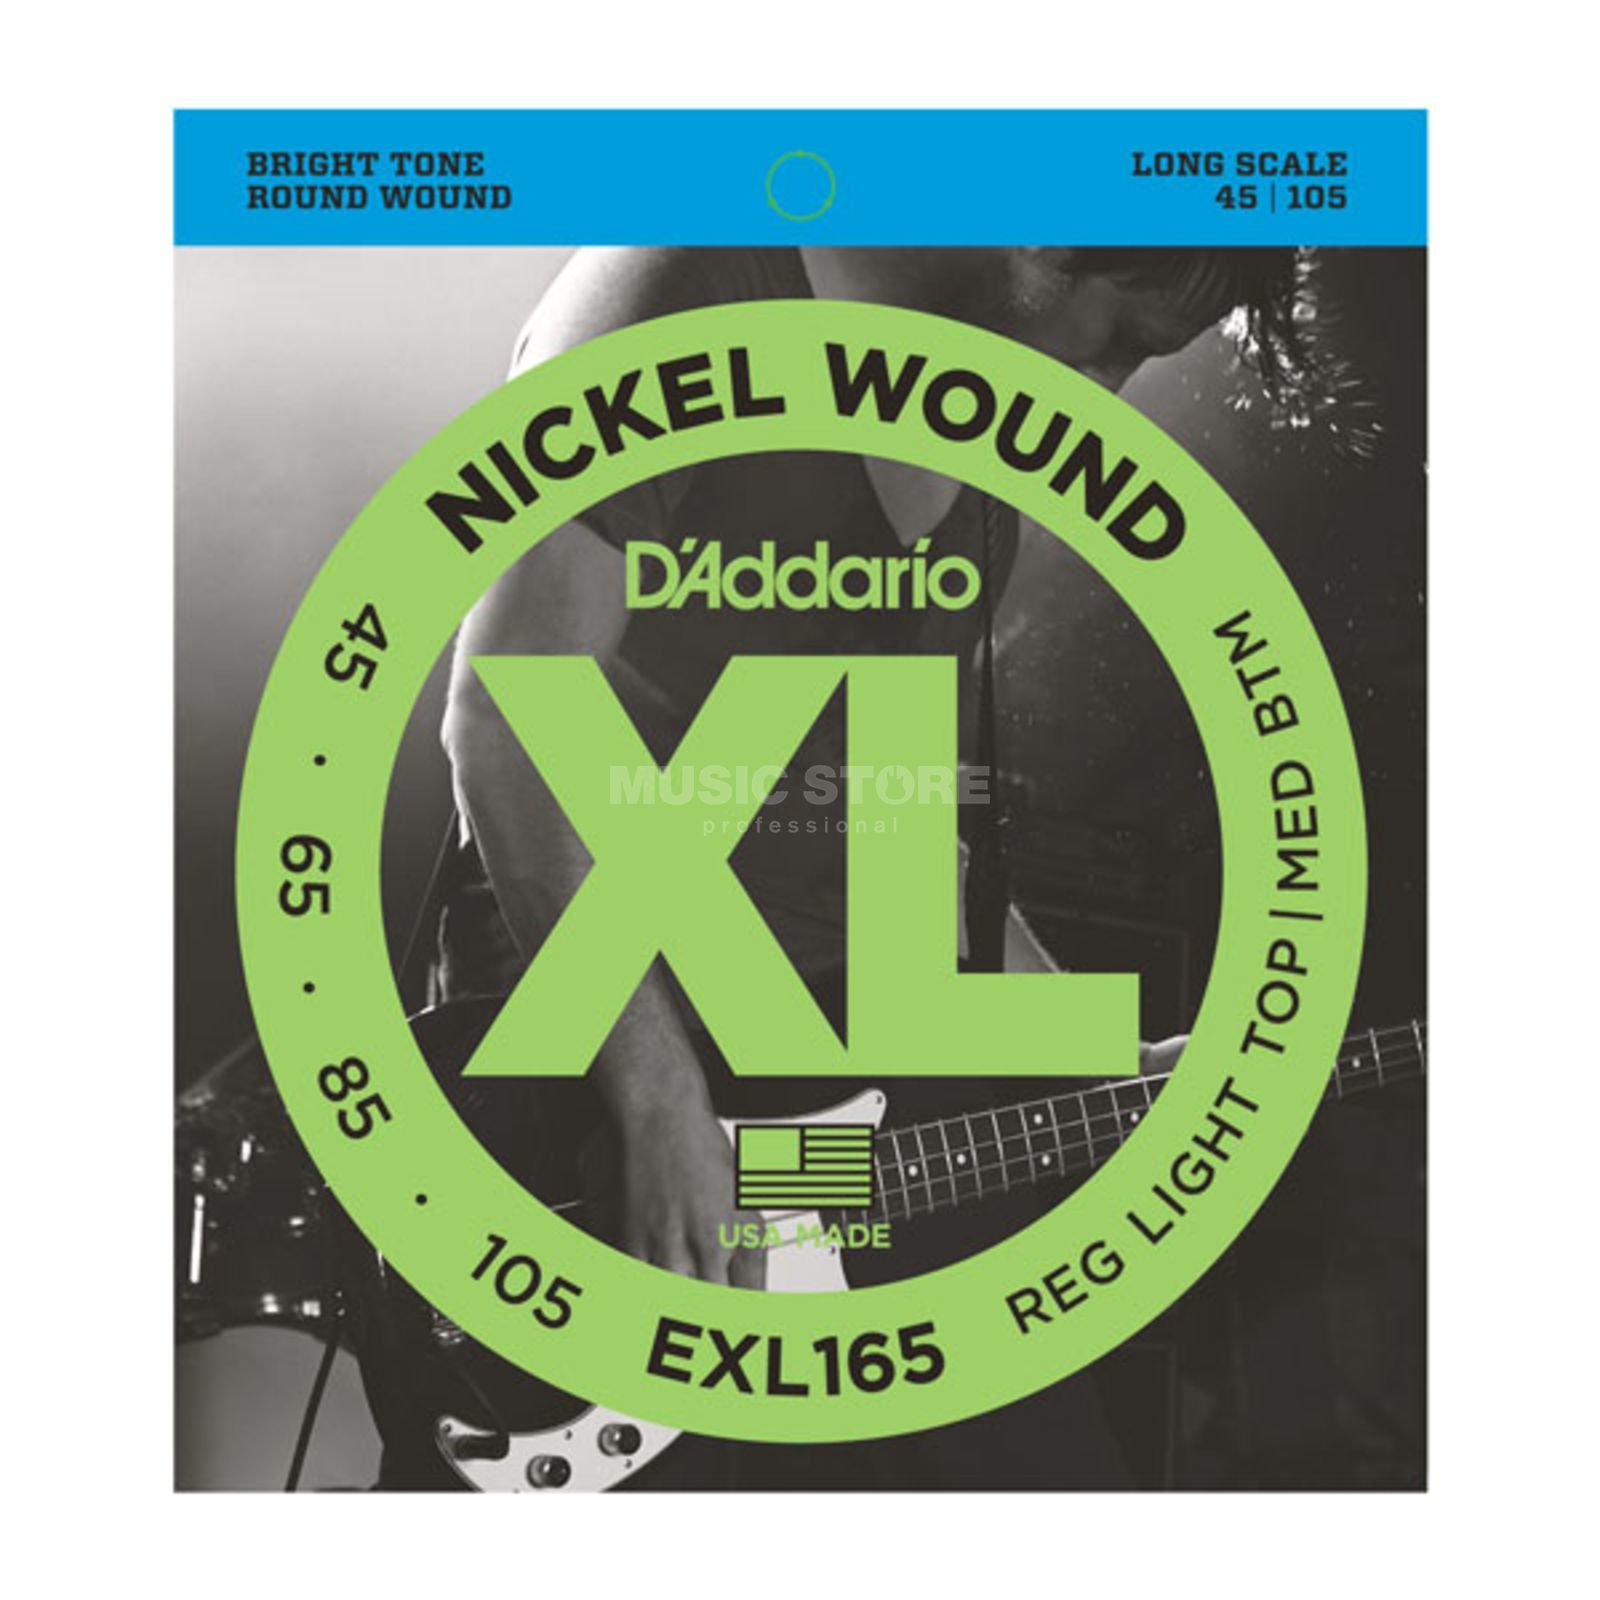 D'Addario Bass Strings  XL Nickel 45-105 45-65-85-105, EXL165 Product Image